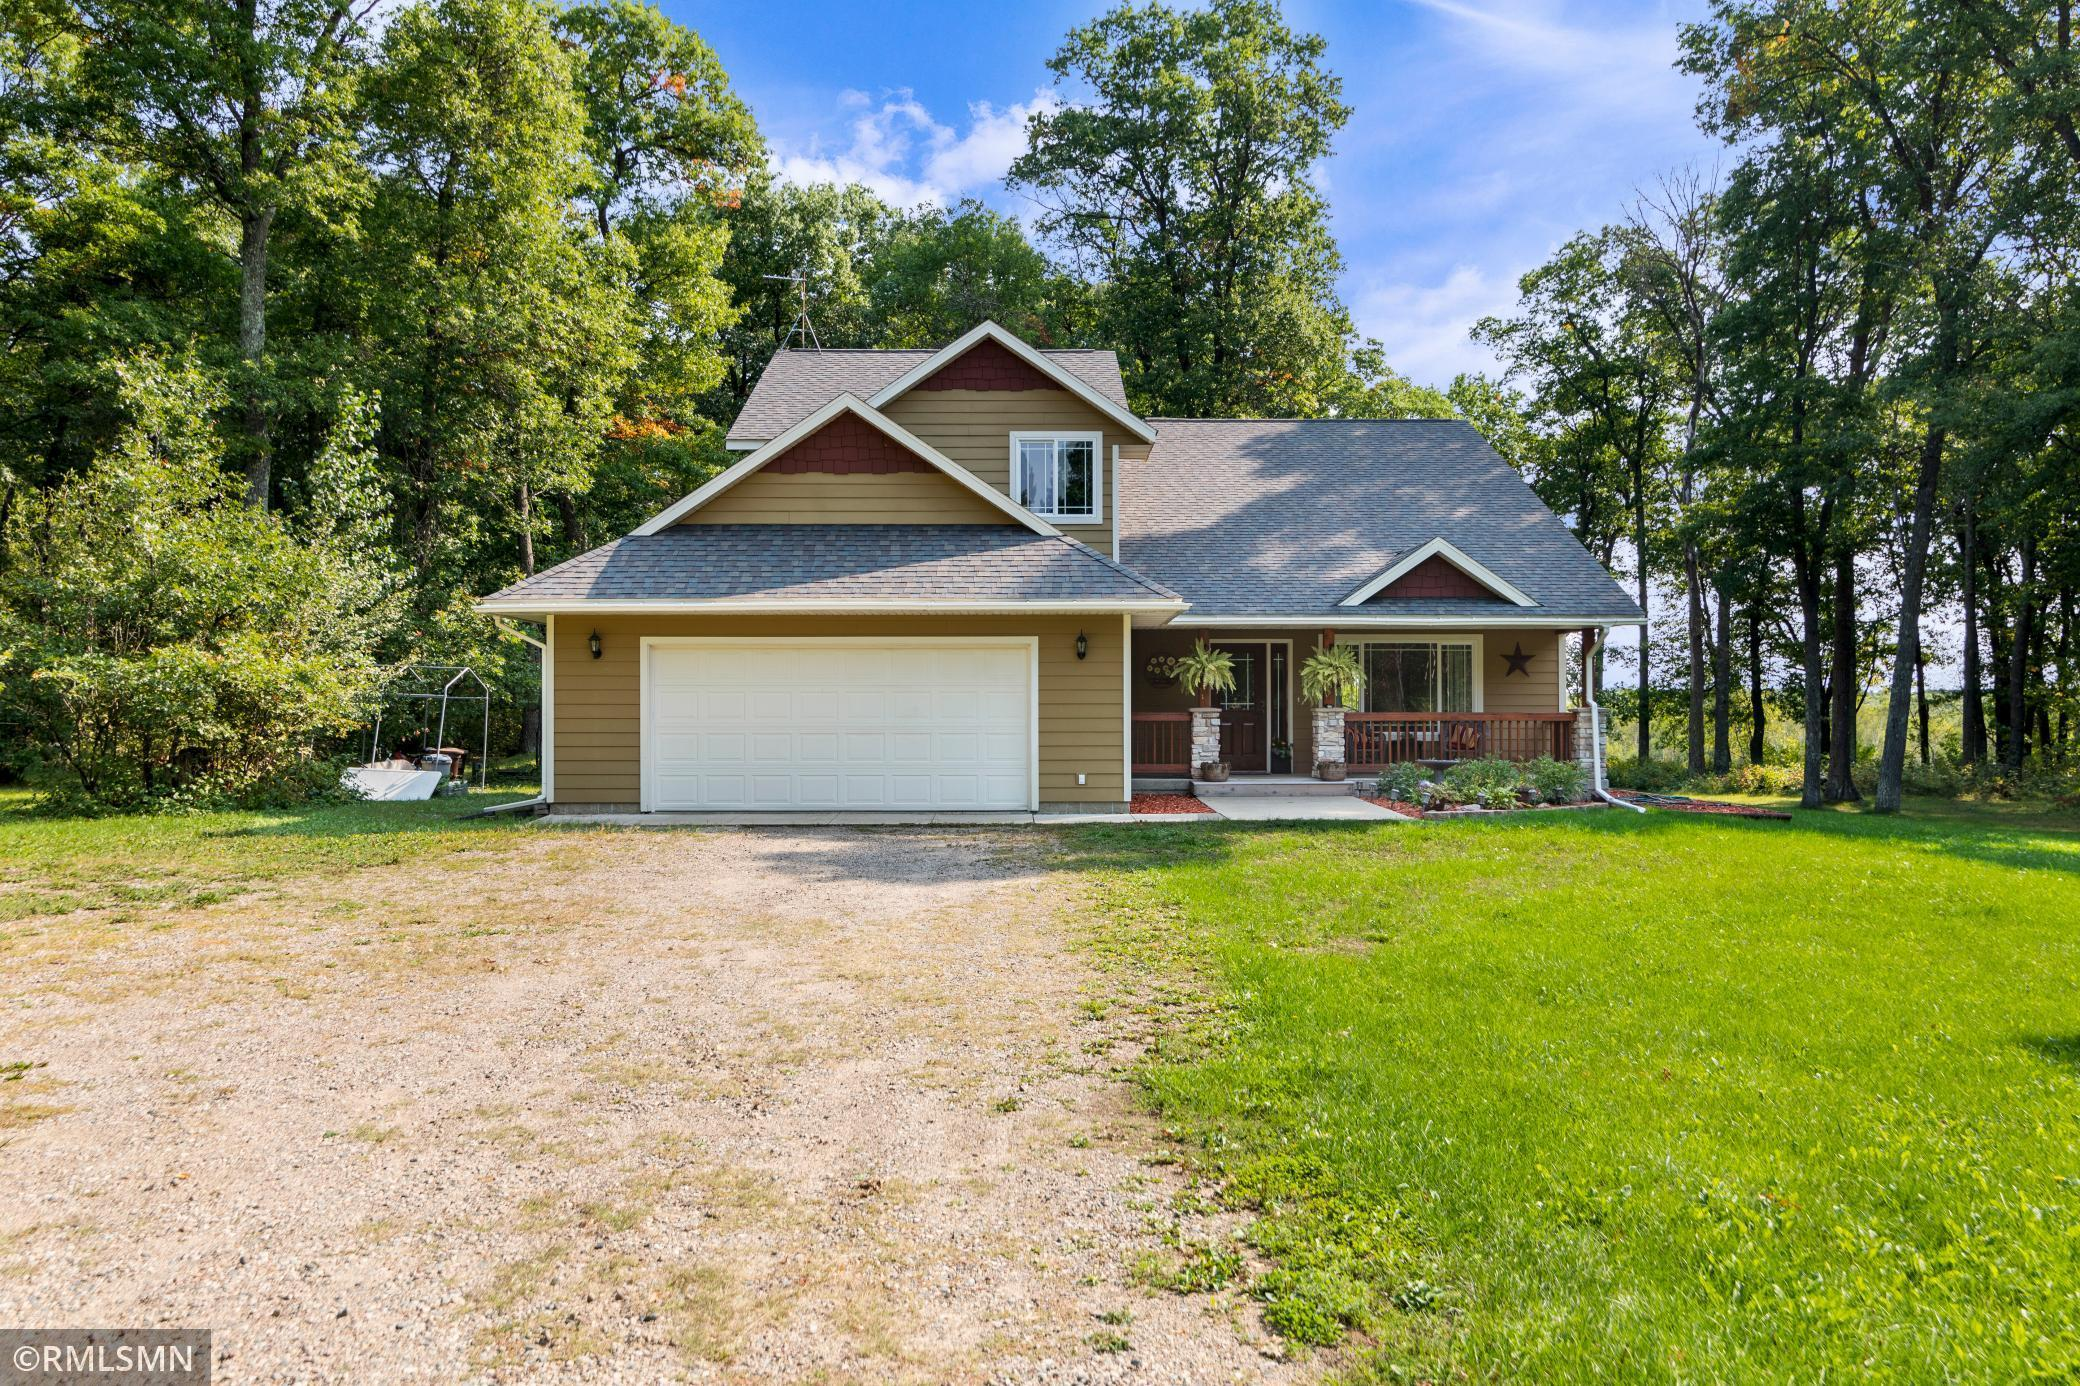 Gorgeous 6 bedroom 4 bath home on almost 3 acres. This home is on a quiet cul-de-sac in a beautiful neighborhood in Brainerd. Close to town but country living. This home features a master suite and finished basement. There is a roughed in bath on lower level and a fabulous rec room.